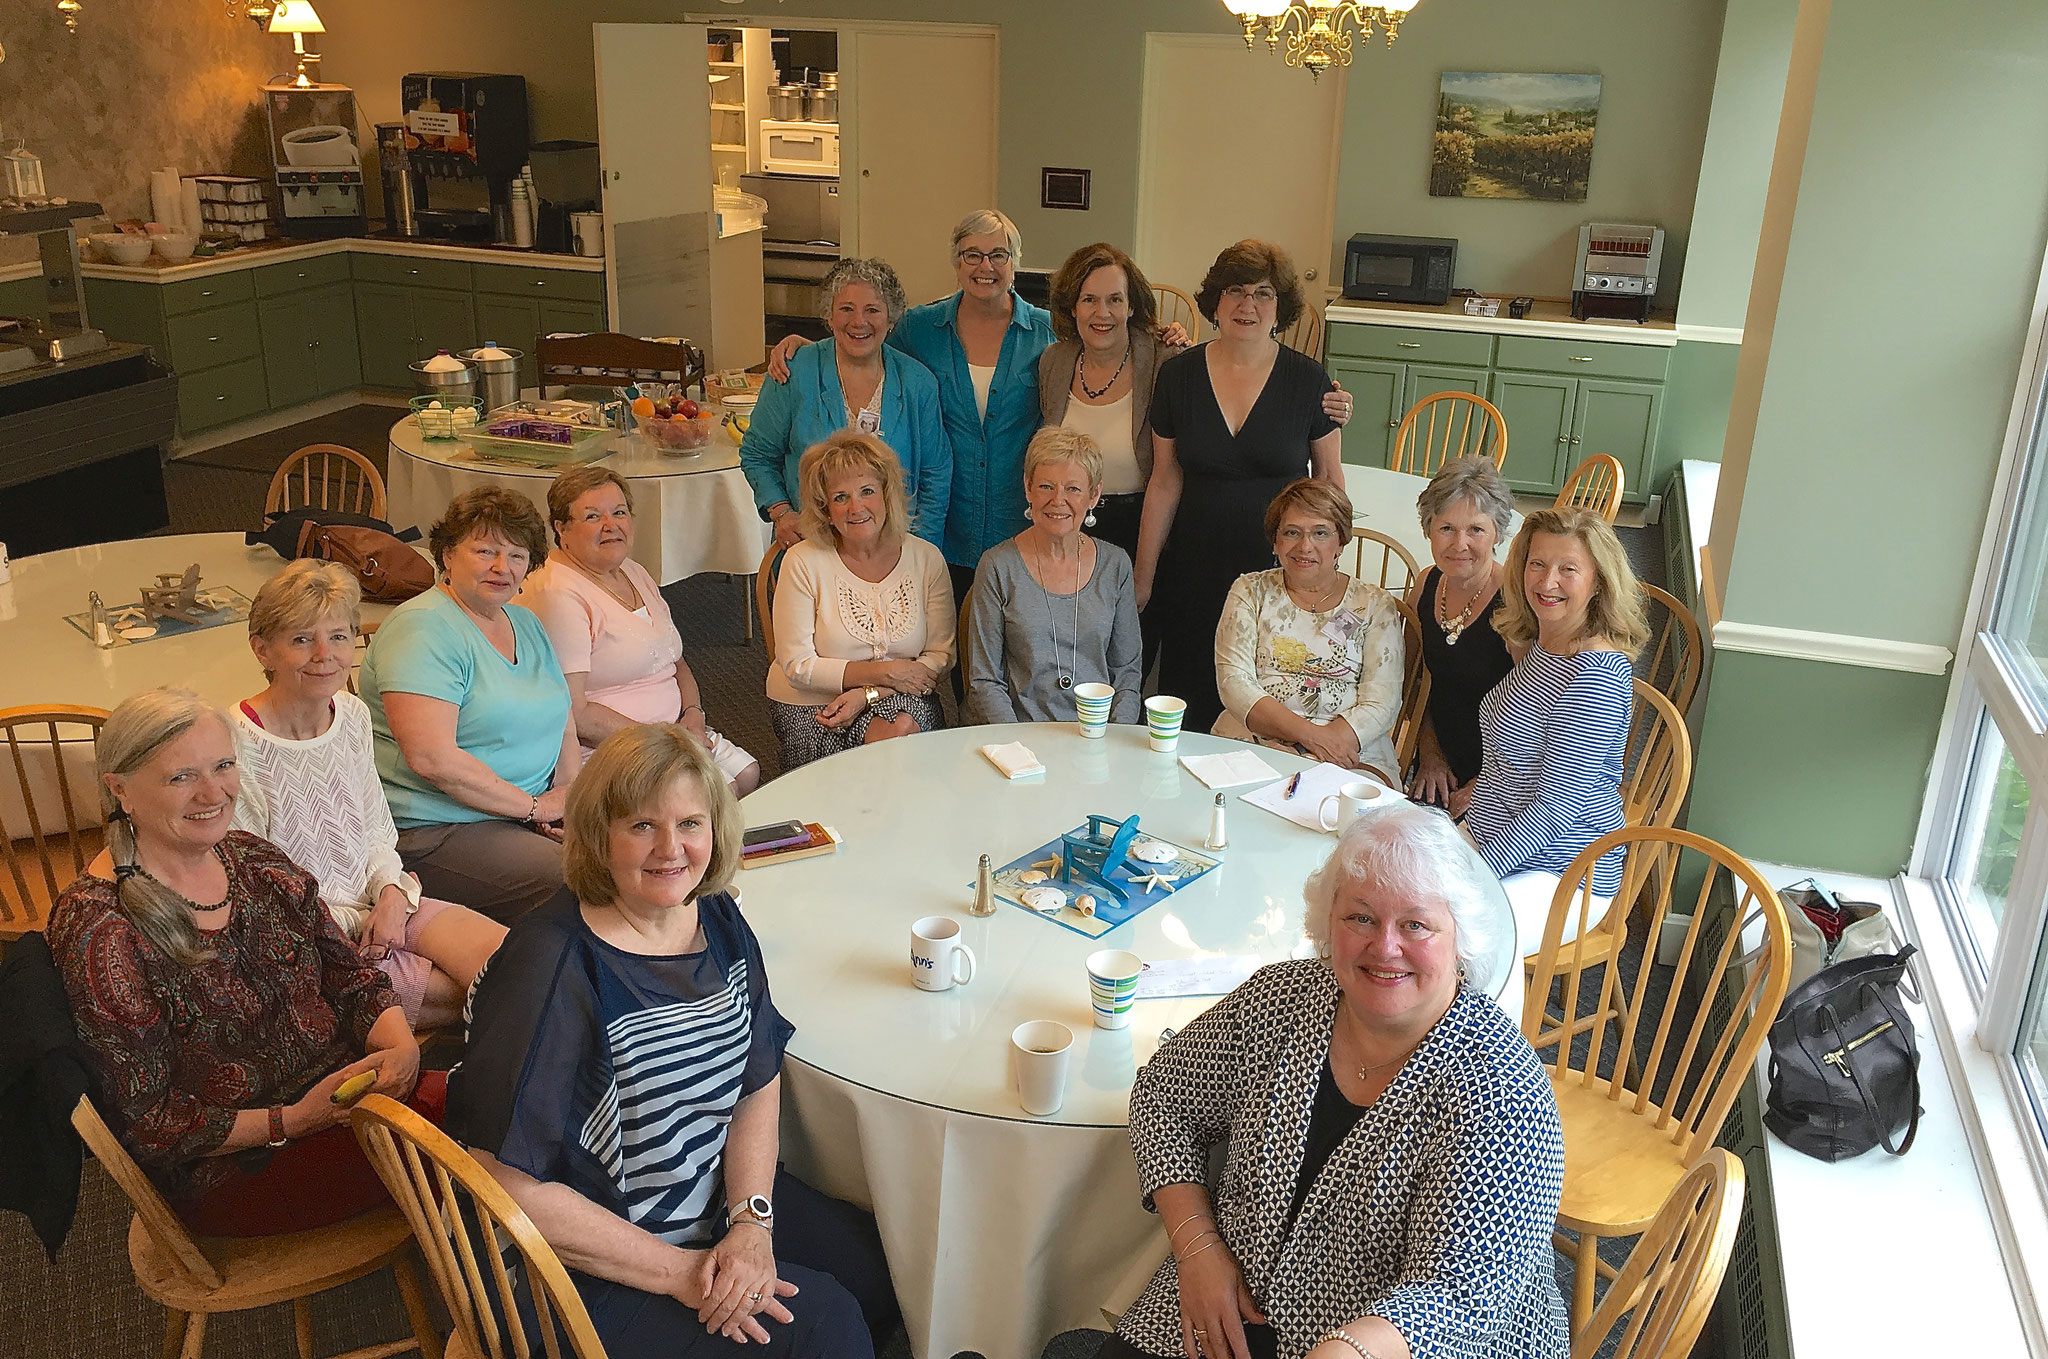 from left bottom: Joanne, Patty, Marie, Theresa, Diane, Susie, Janelle, Maria, Janet, Patricia, Mary Jane.  Four in back standing: Sue, Pat, Lorraine, Elva